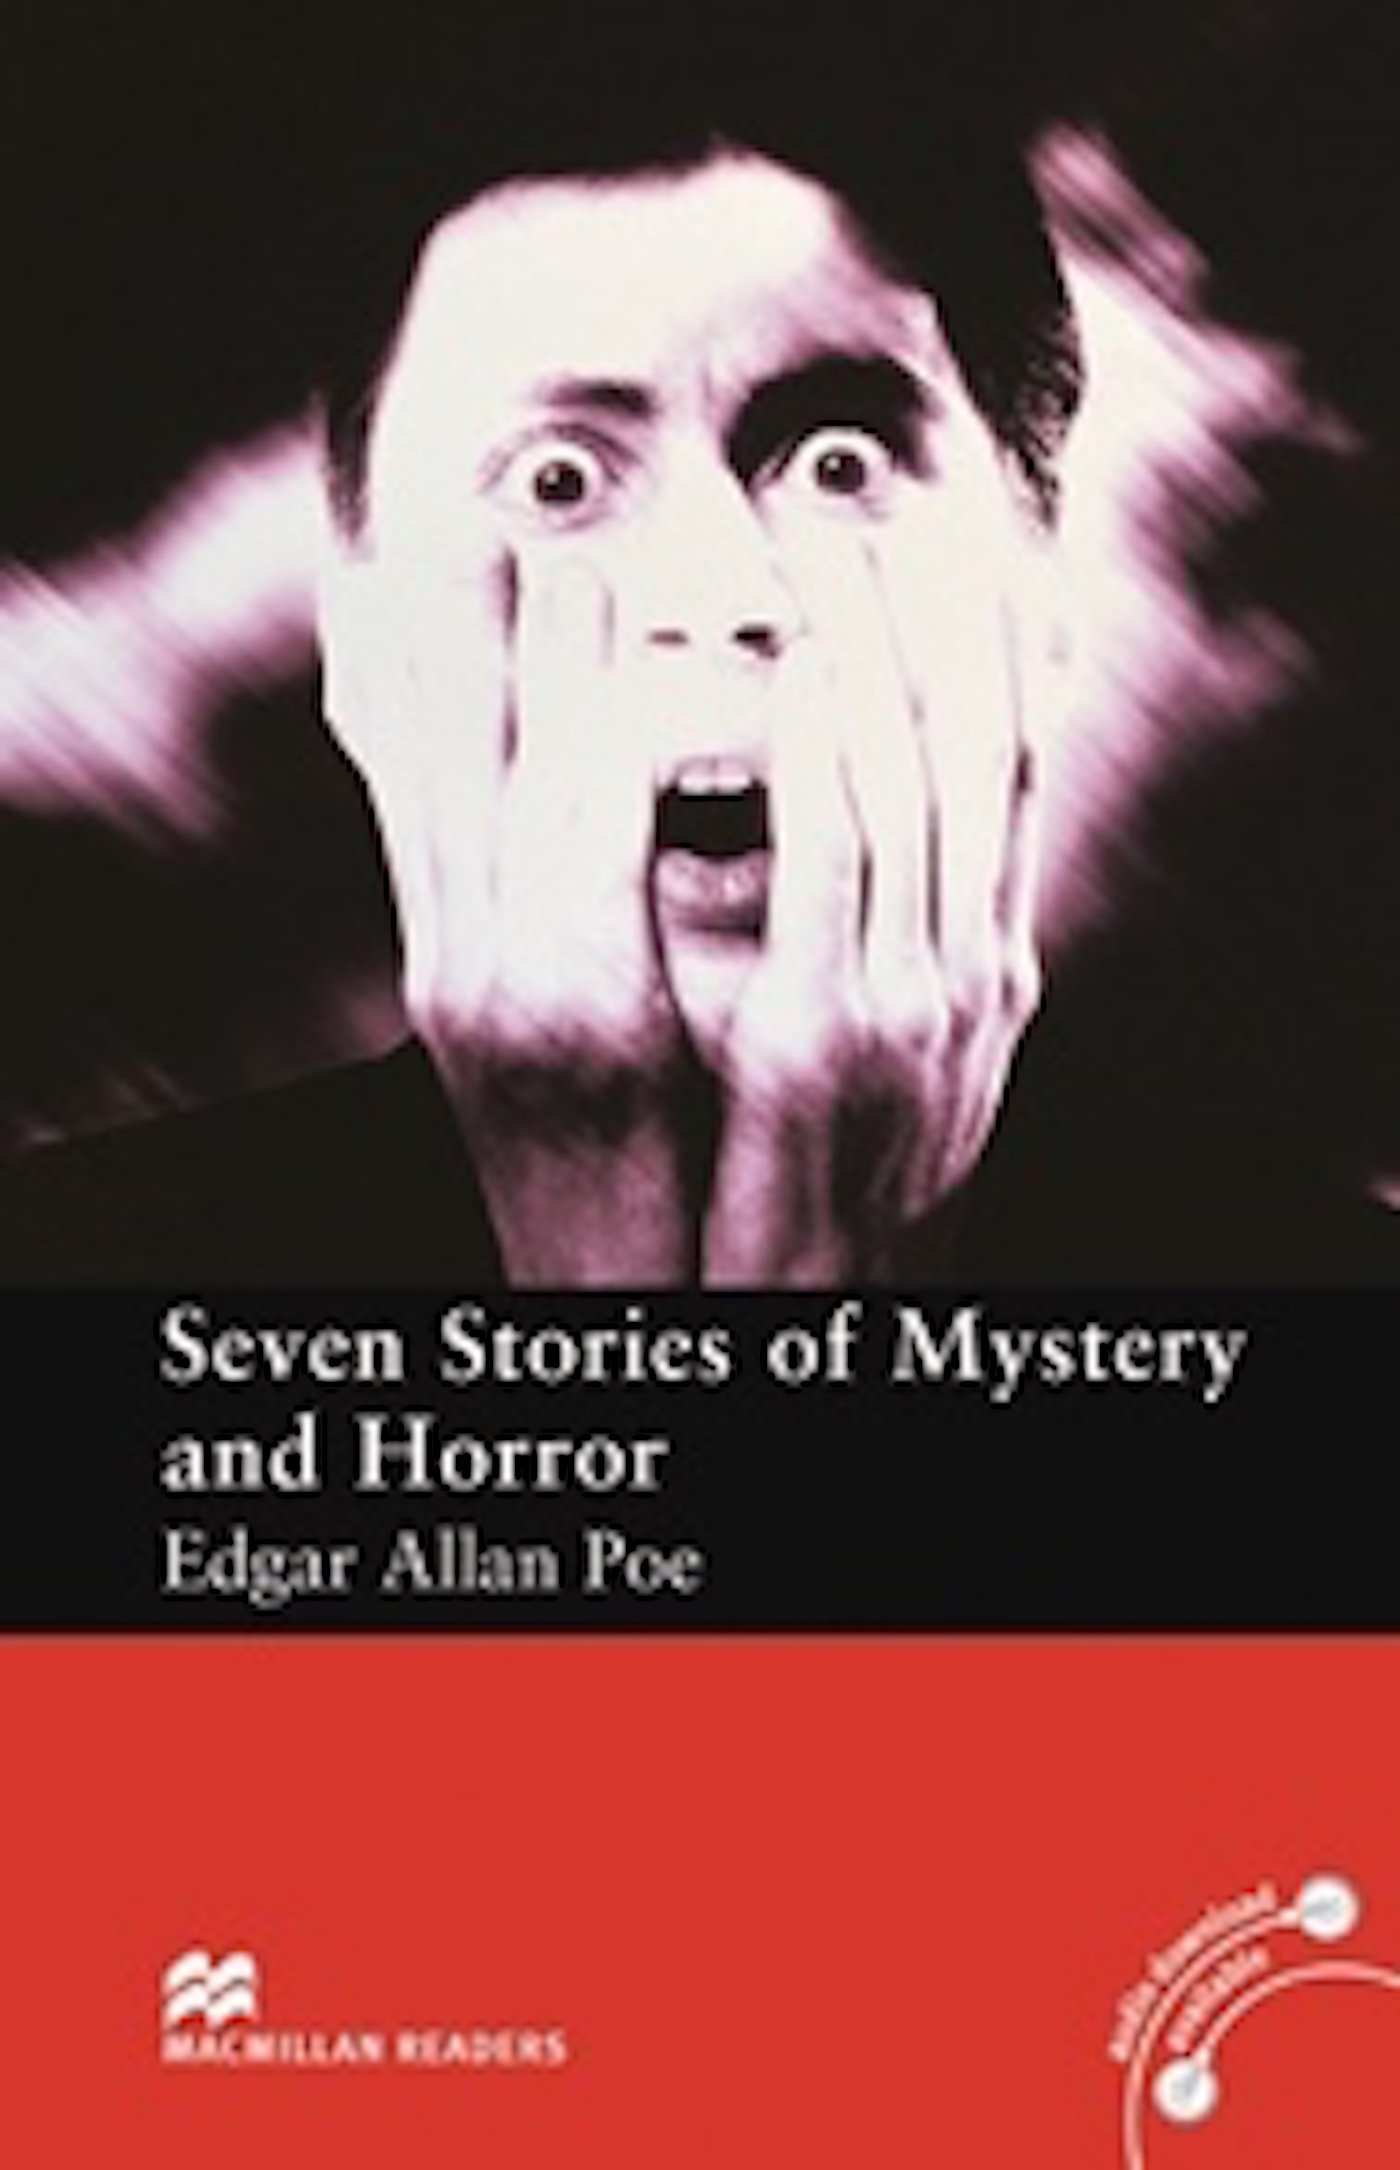 Seven Stories of Mystery and Horror: Macmillan Reader Level 3 Seven Stories of Mystery and Horror Elementary Reader Elementary Level pdf epub